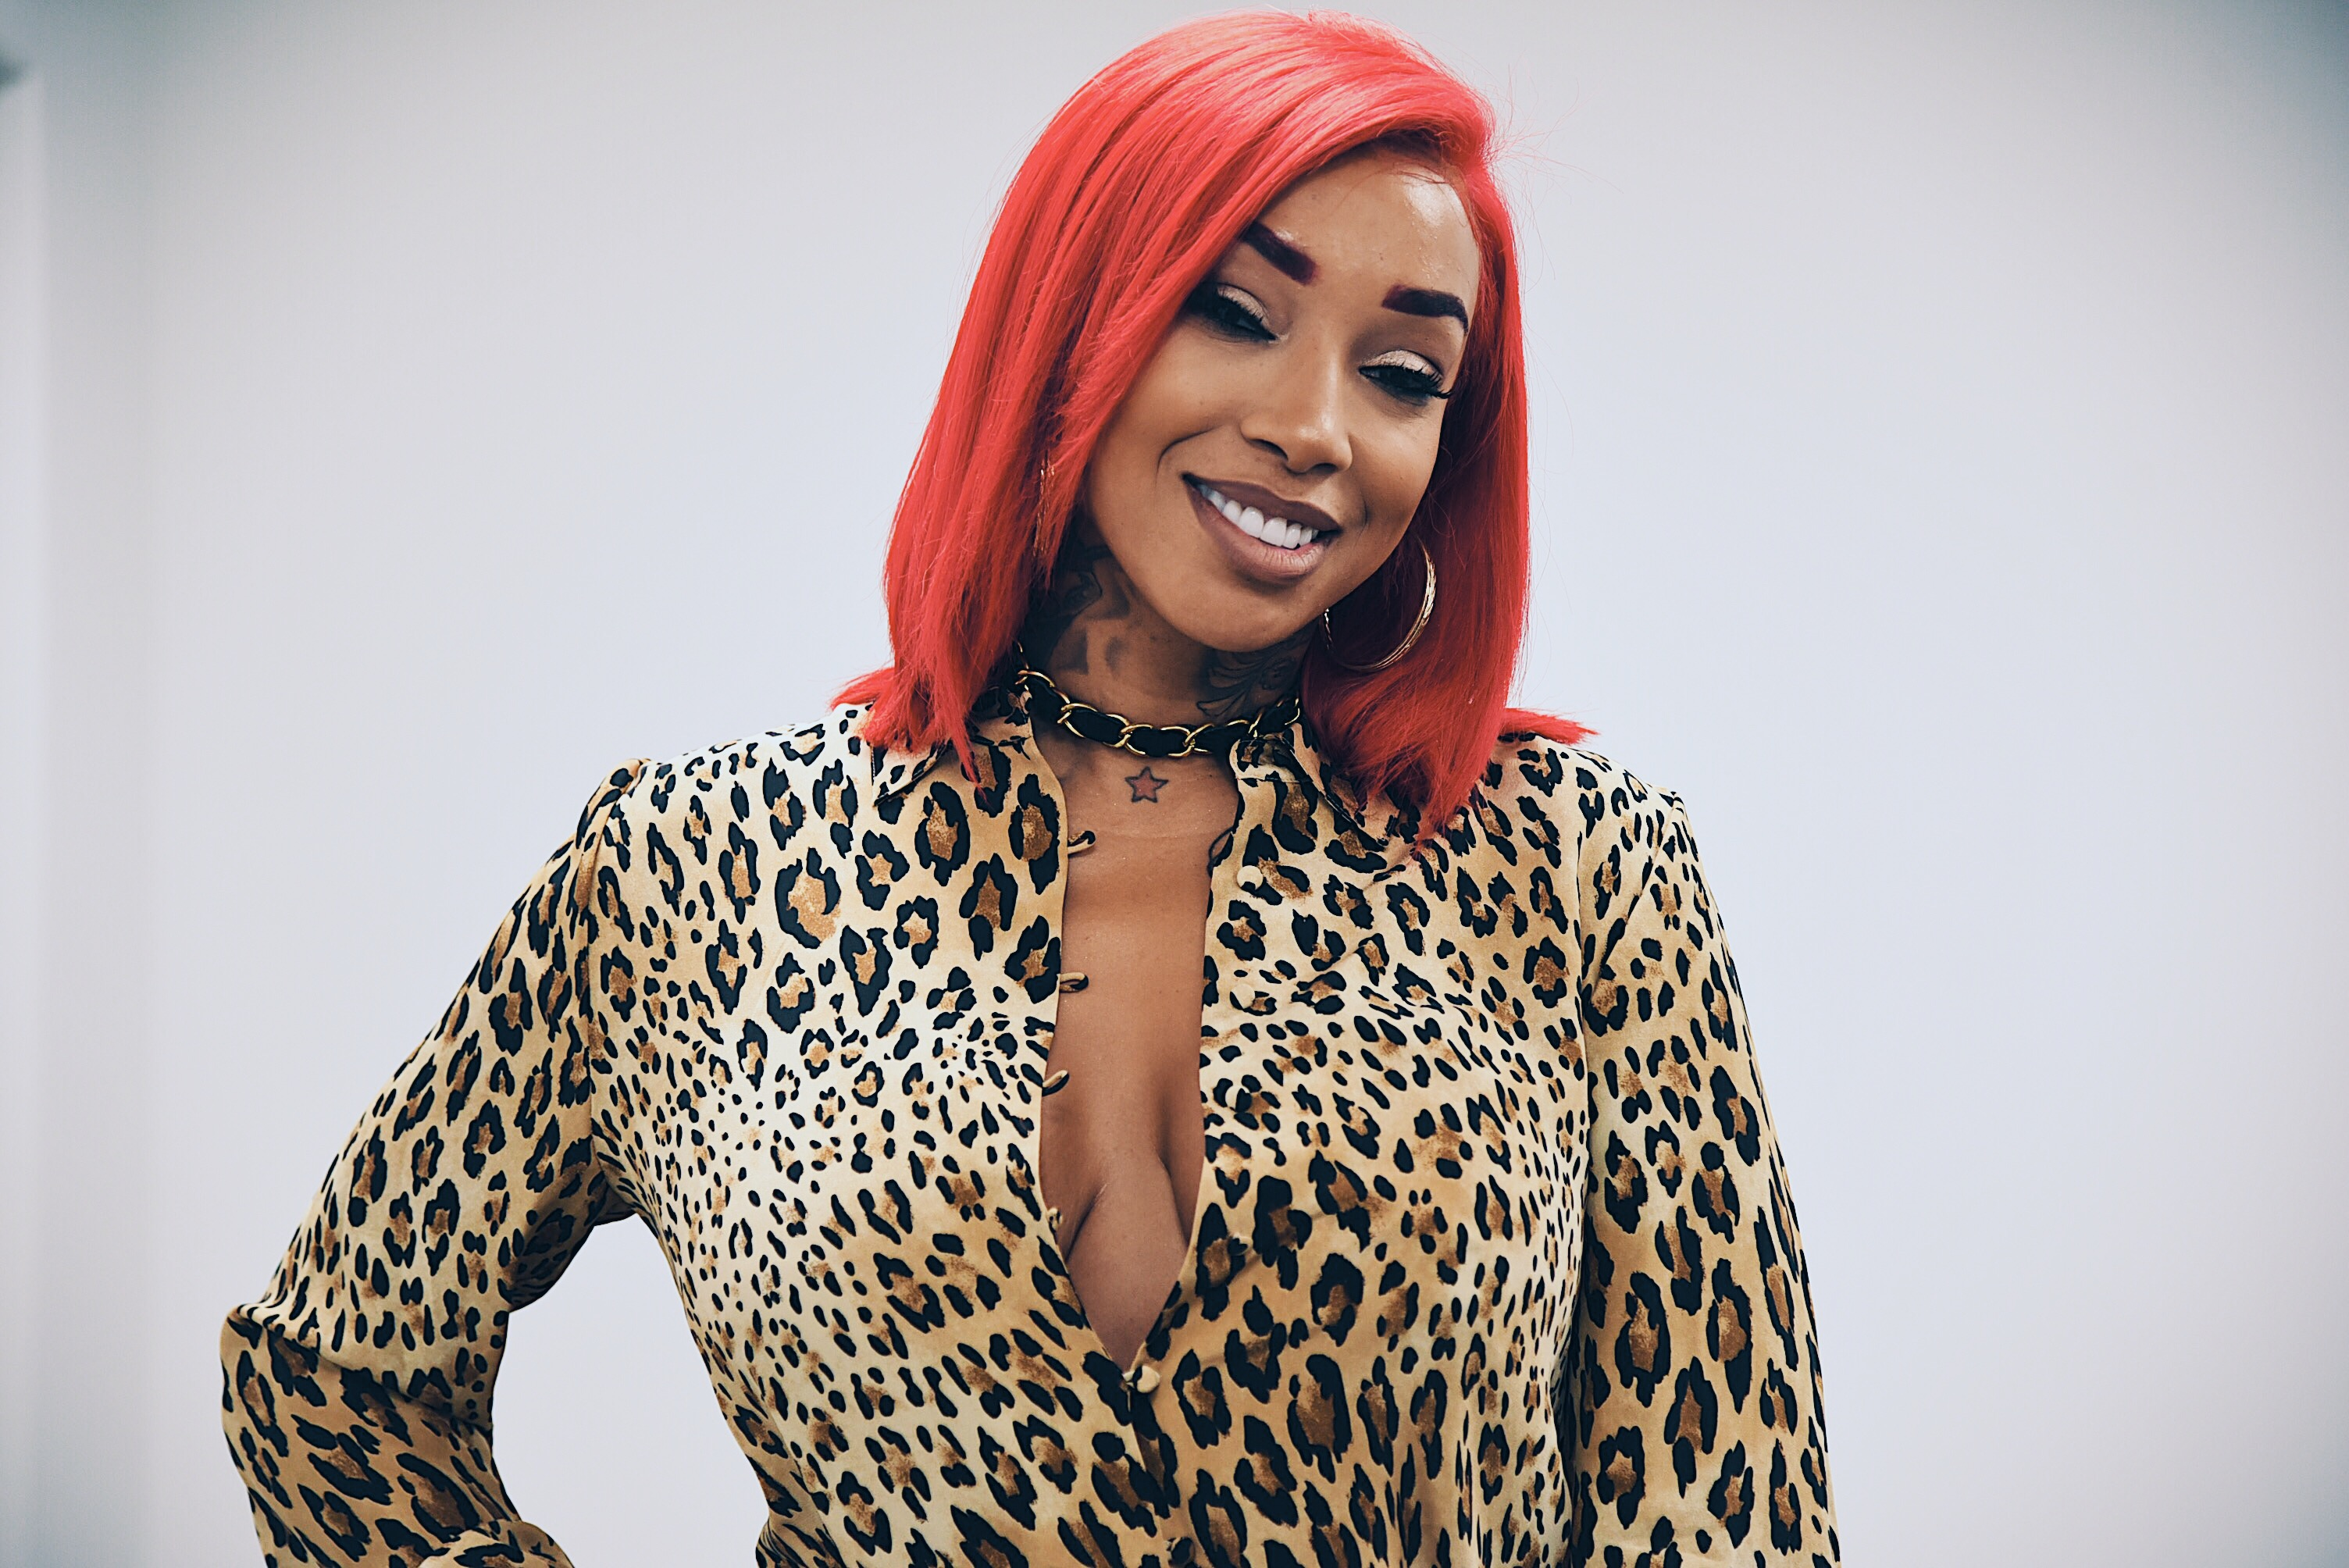 Sky & Her Son Des Go At It In Season 8 Premiere of 'Black Ink Crew'